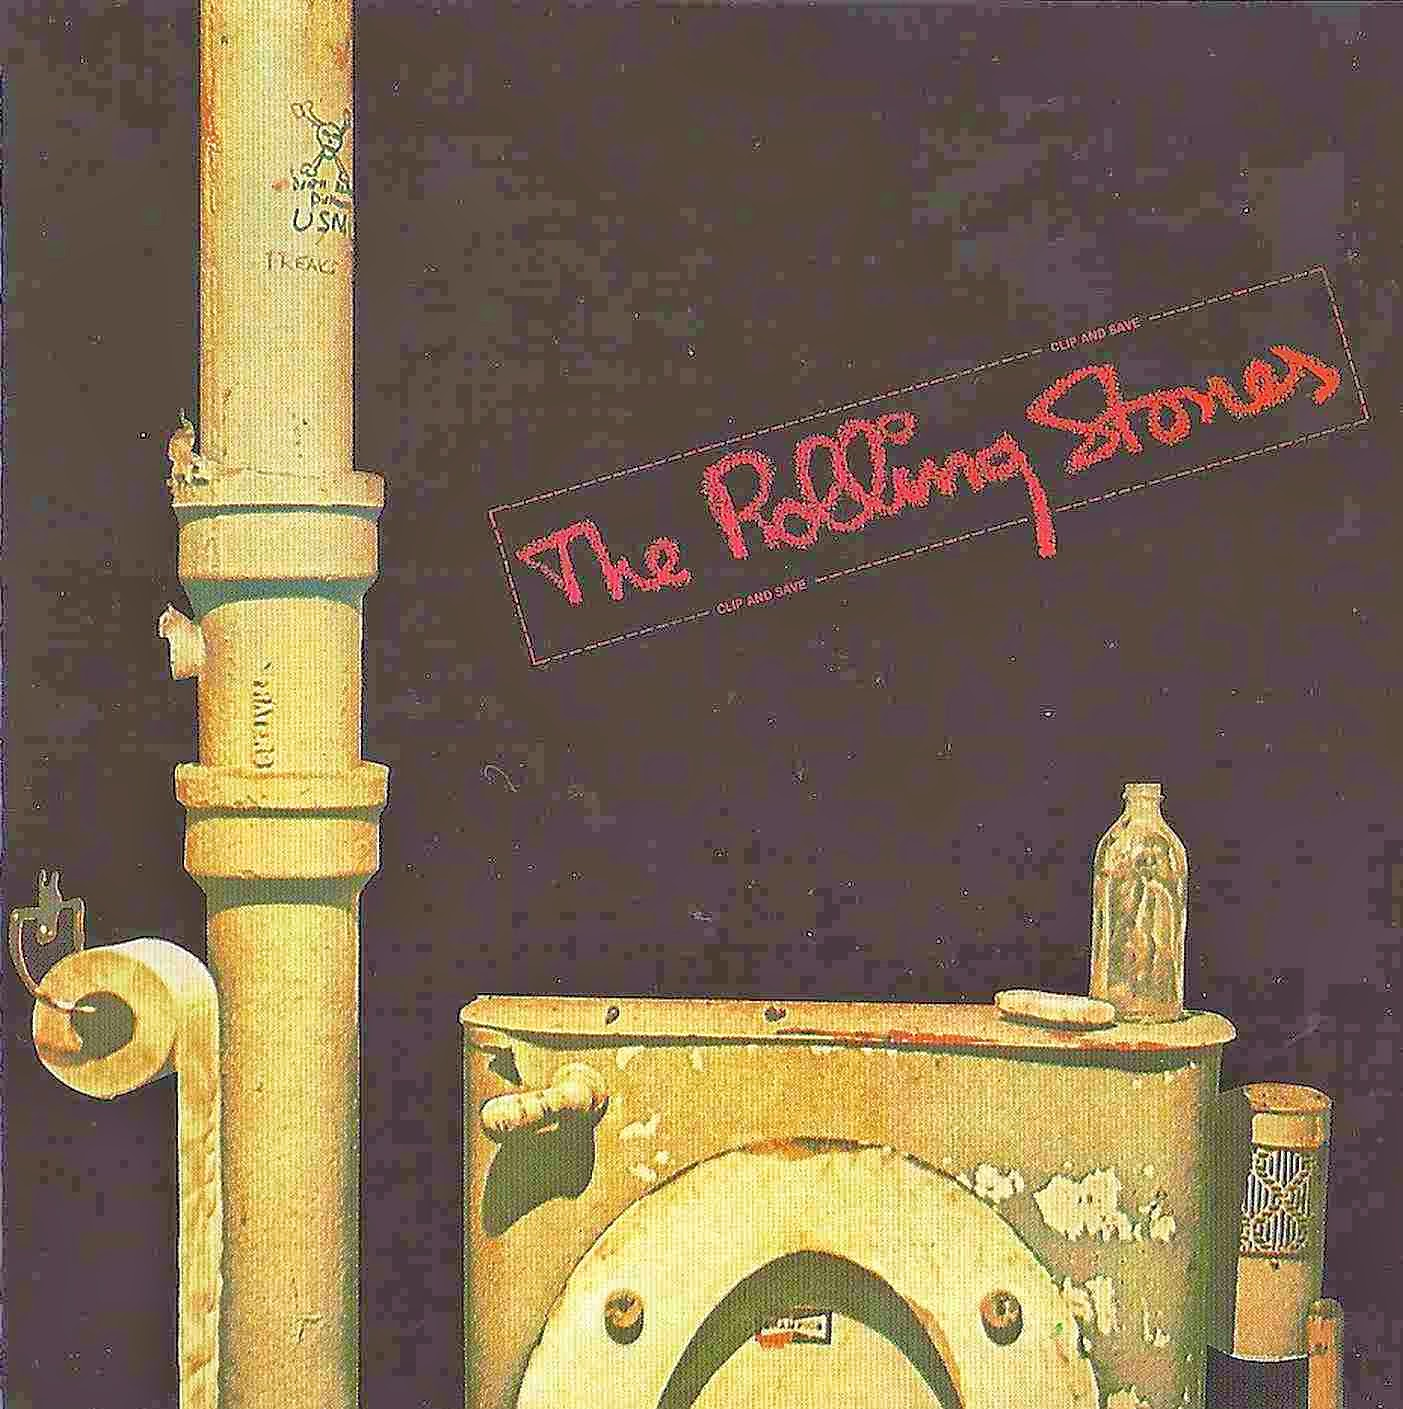 The rolling stones flac